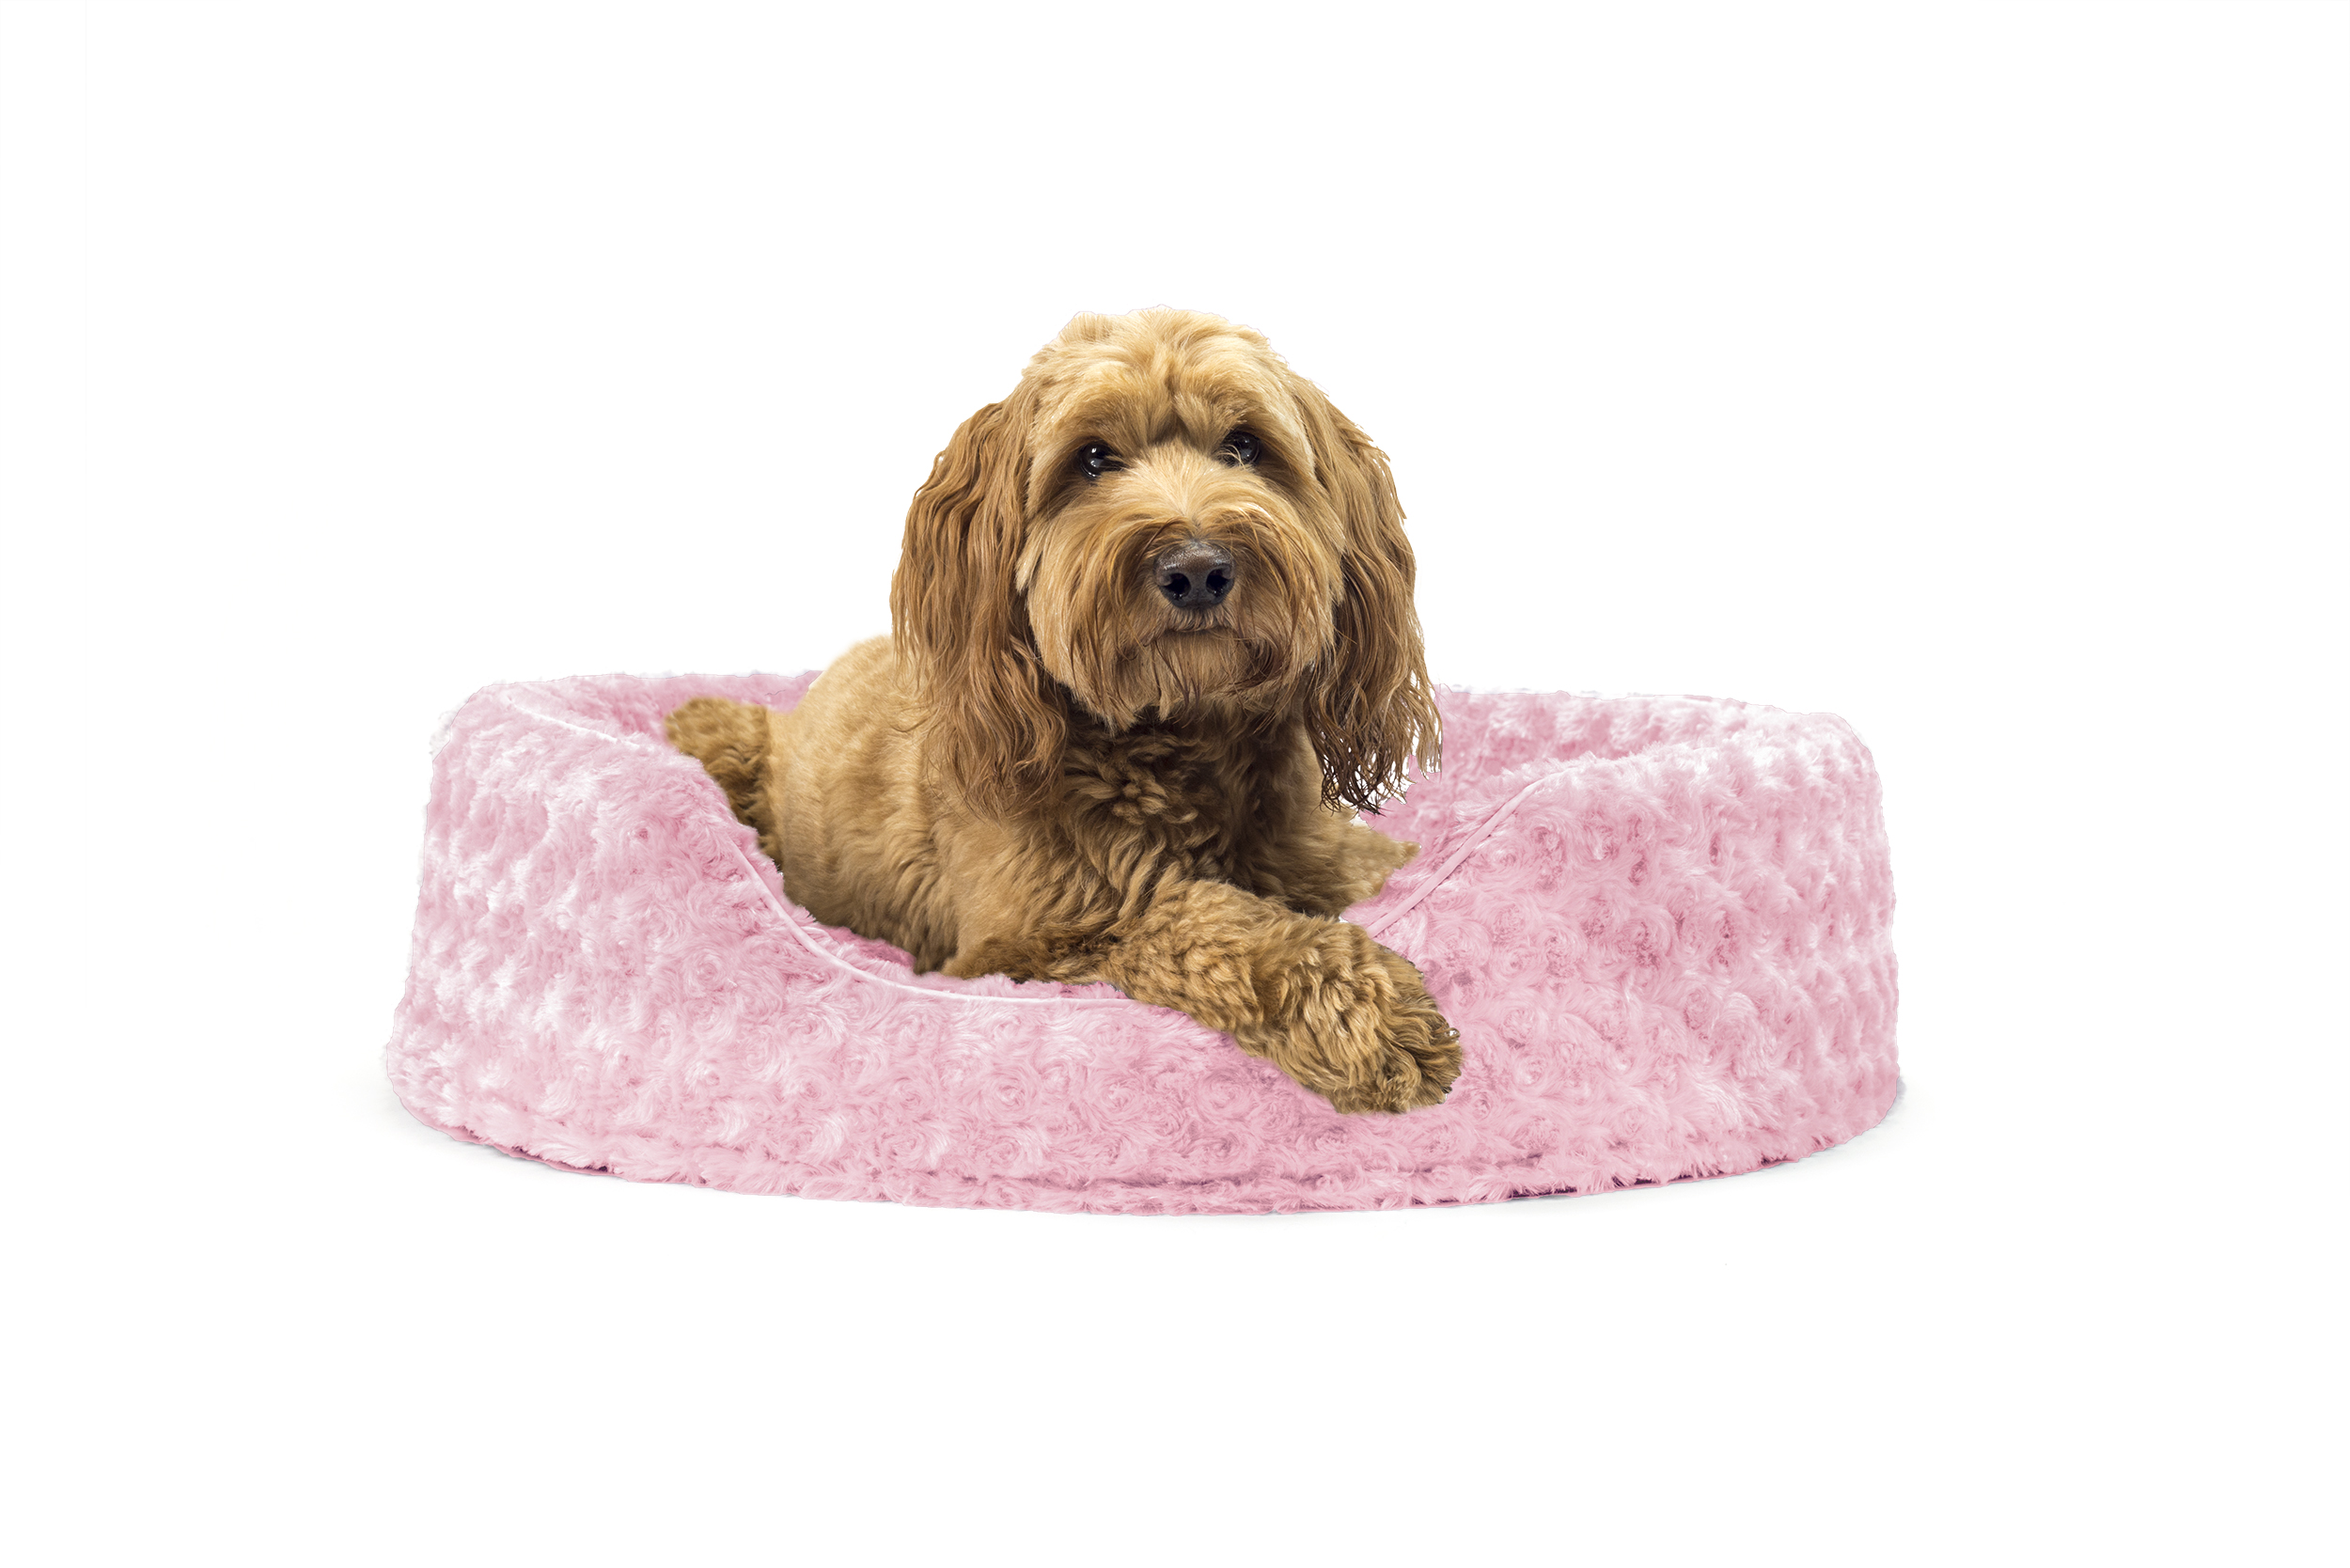 cover birdsong and dogs in fantastic cats uncategorized beds water pls on within covers bed heavy removable pinterest size with full dog amazing of duty orthopedic